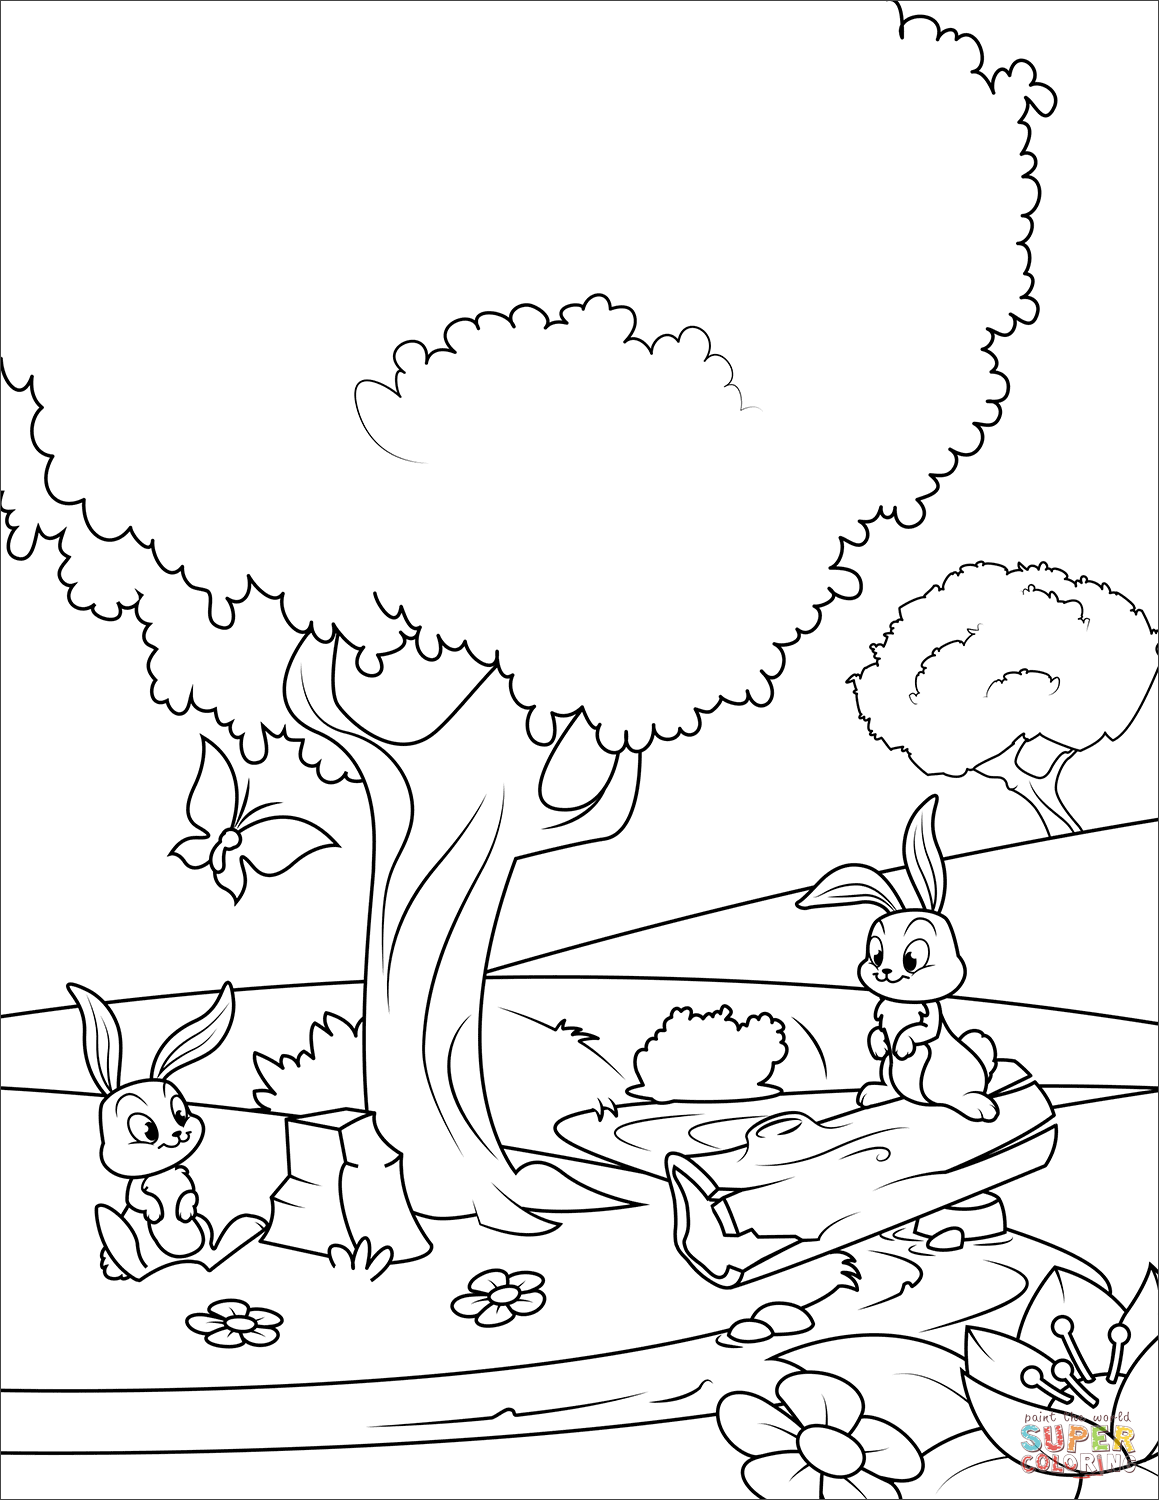 Rabbits In The Spring Forest Coloring Page